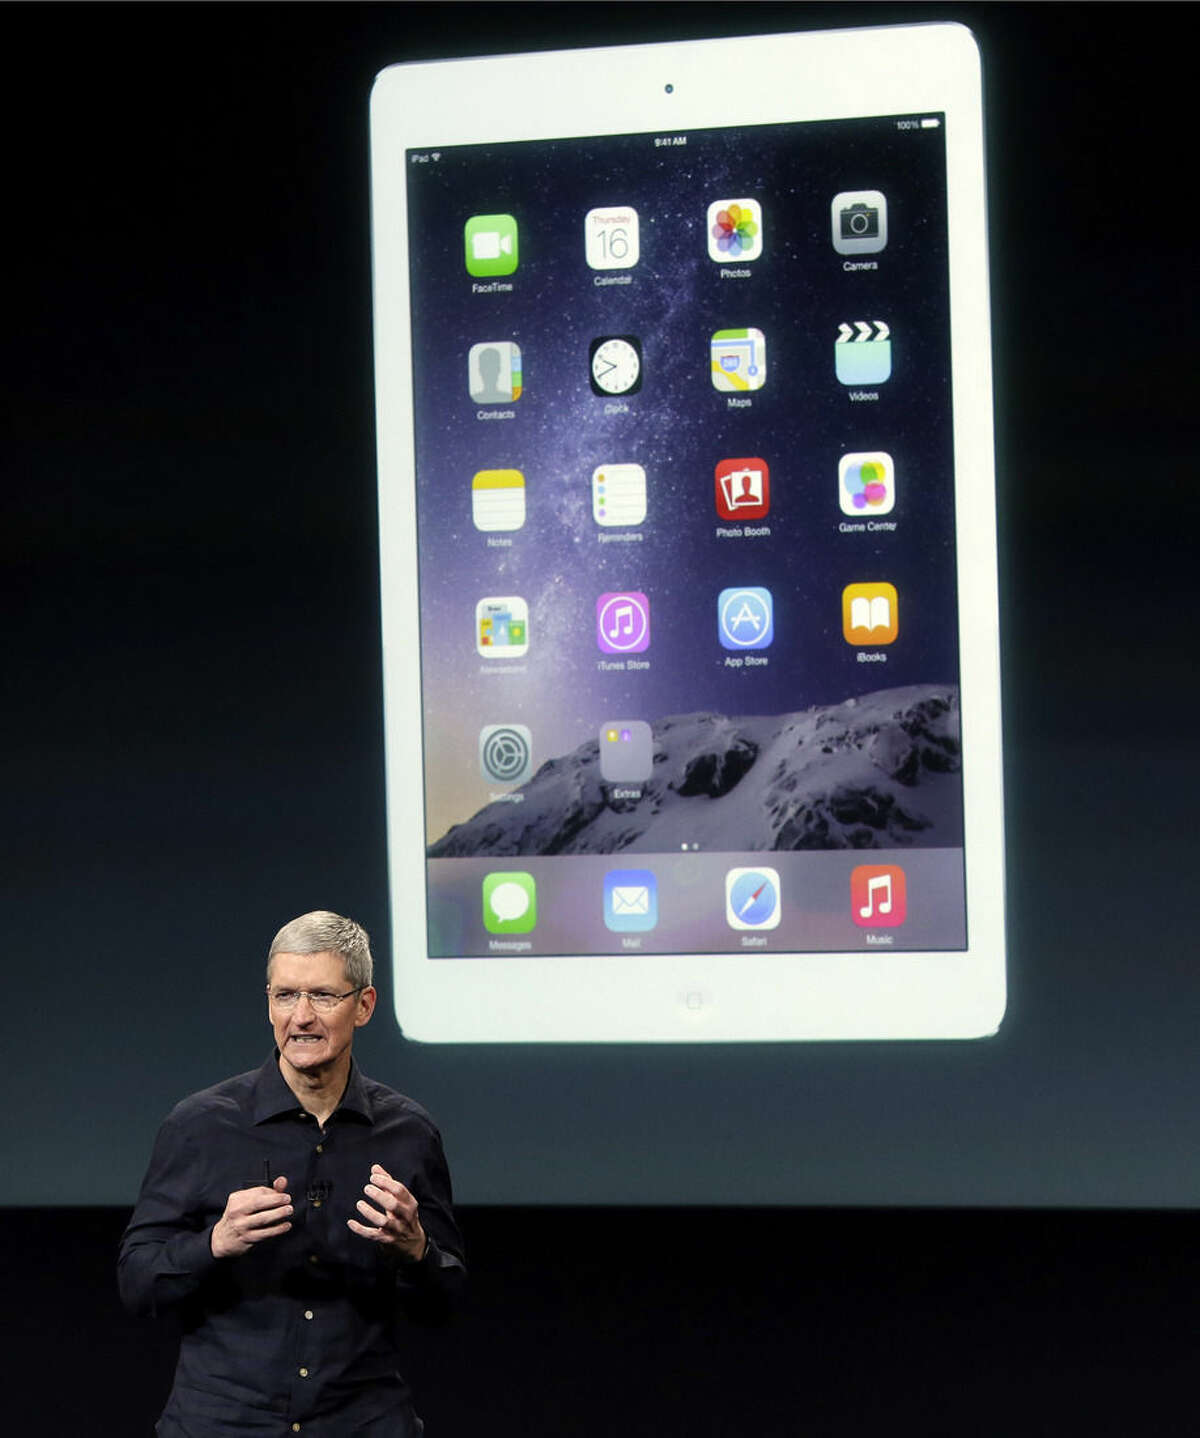 File-This Oct. 16, 2014, file photo shows Apple CEO Tim Cook introducing the new Apple iPad Air 2 during an event at Apple headquarters in Cupertino, Calif. People tend to hold onto tablets longer than smartphones, so take time to weigh your options. A major consideration is what phone you or your gift recipient already has. Although it's possible for Android owners to have Apple's iPads, for instance, there are advantages to sticking within the same system. You often can buy apps just once and share them across both devices, and you don't need to learn two different systems. (AP Photo/Marcio Jose Sanchez, File)